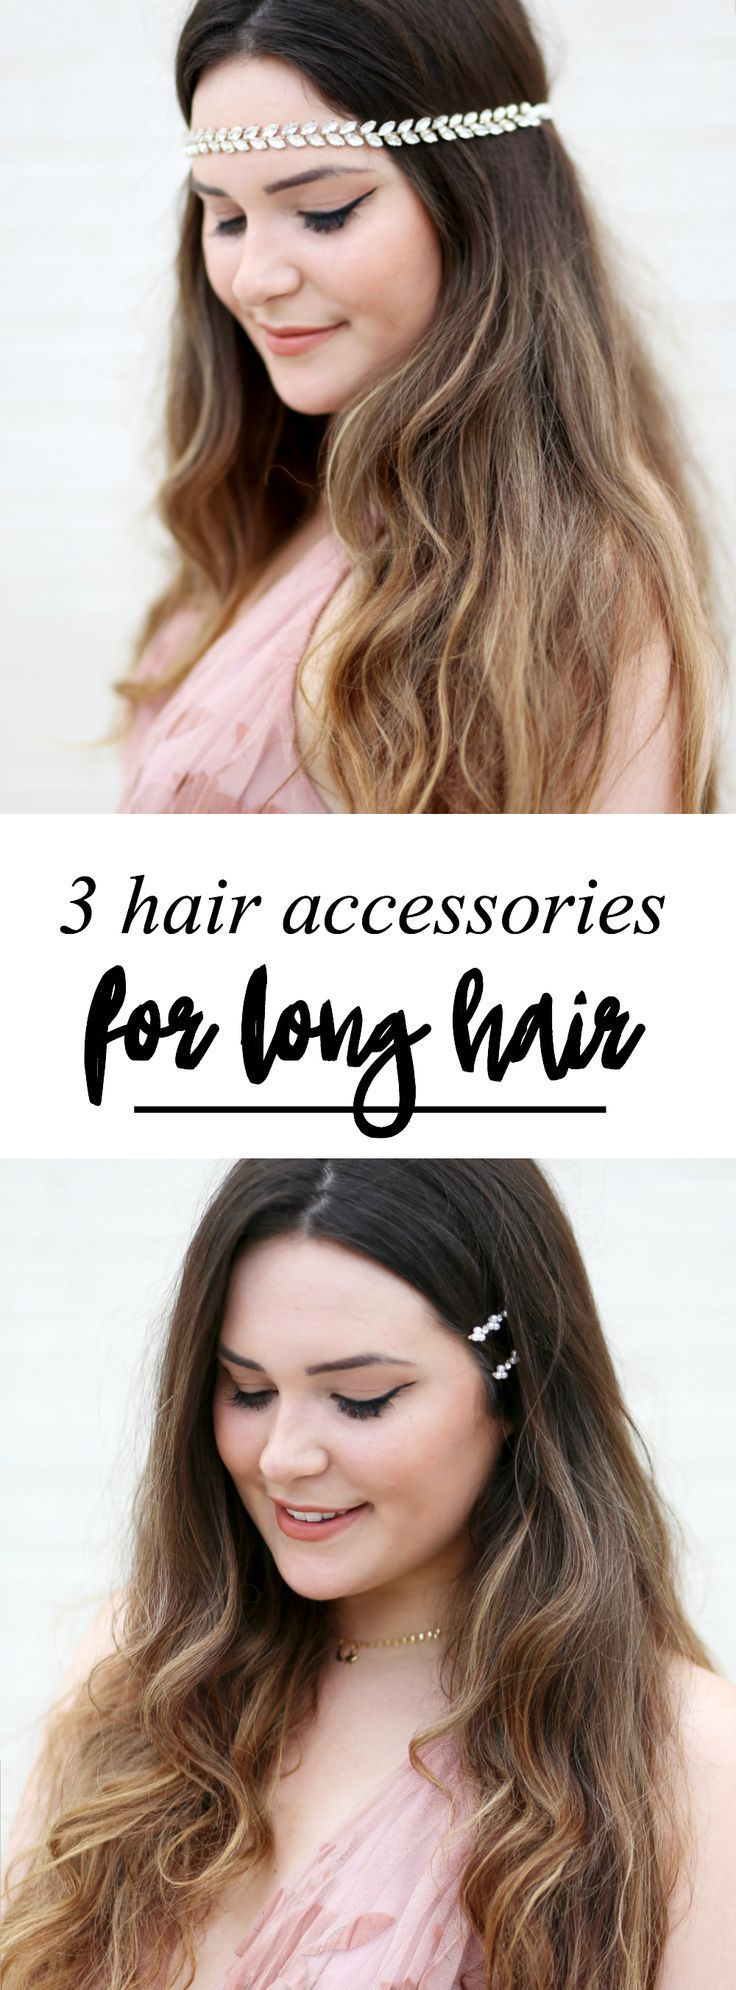 So many cute ideas! / Beauty blogger Michelle Kehoe of Mash Elle shares 3 easy foolproof methods to elevate loose curls. Perfect for those with long, medium or short hair. These hairstyles can be worn with a casual outfit to brunch or a formal event such